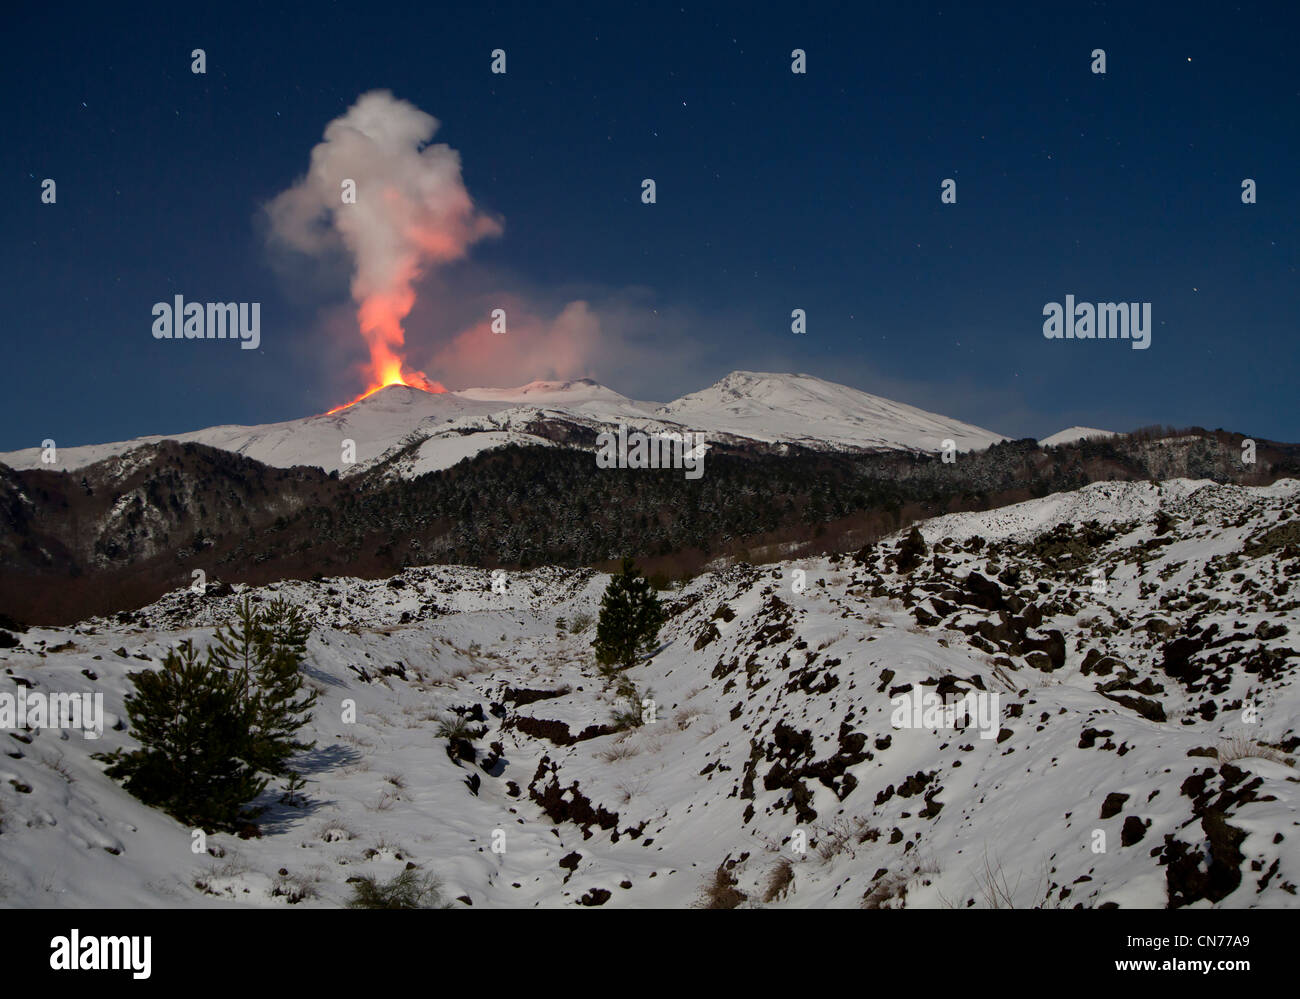 Eruption of Mount Etna, 8-9 February 2012, viewed from the Mareneve road above Fornazzo, Sicily, Italy - Stock Image